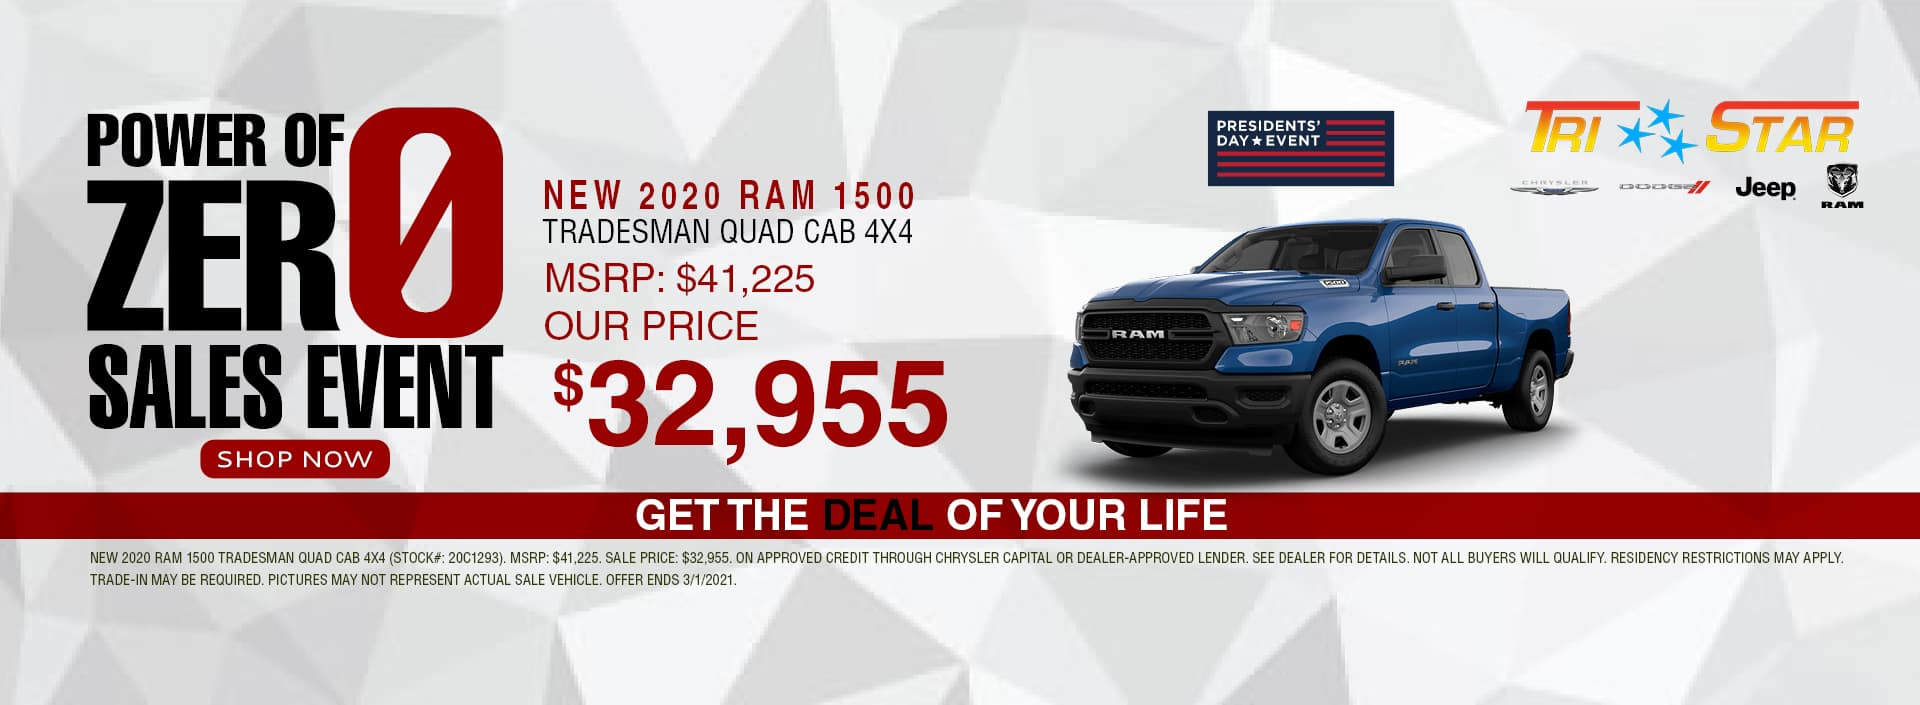 Power of 0 Sales Event - 2020 Ram 1500 $32,955